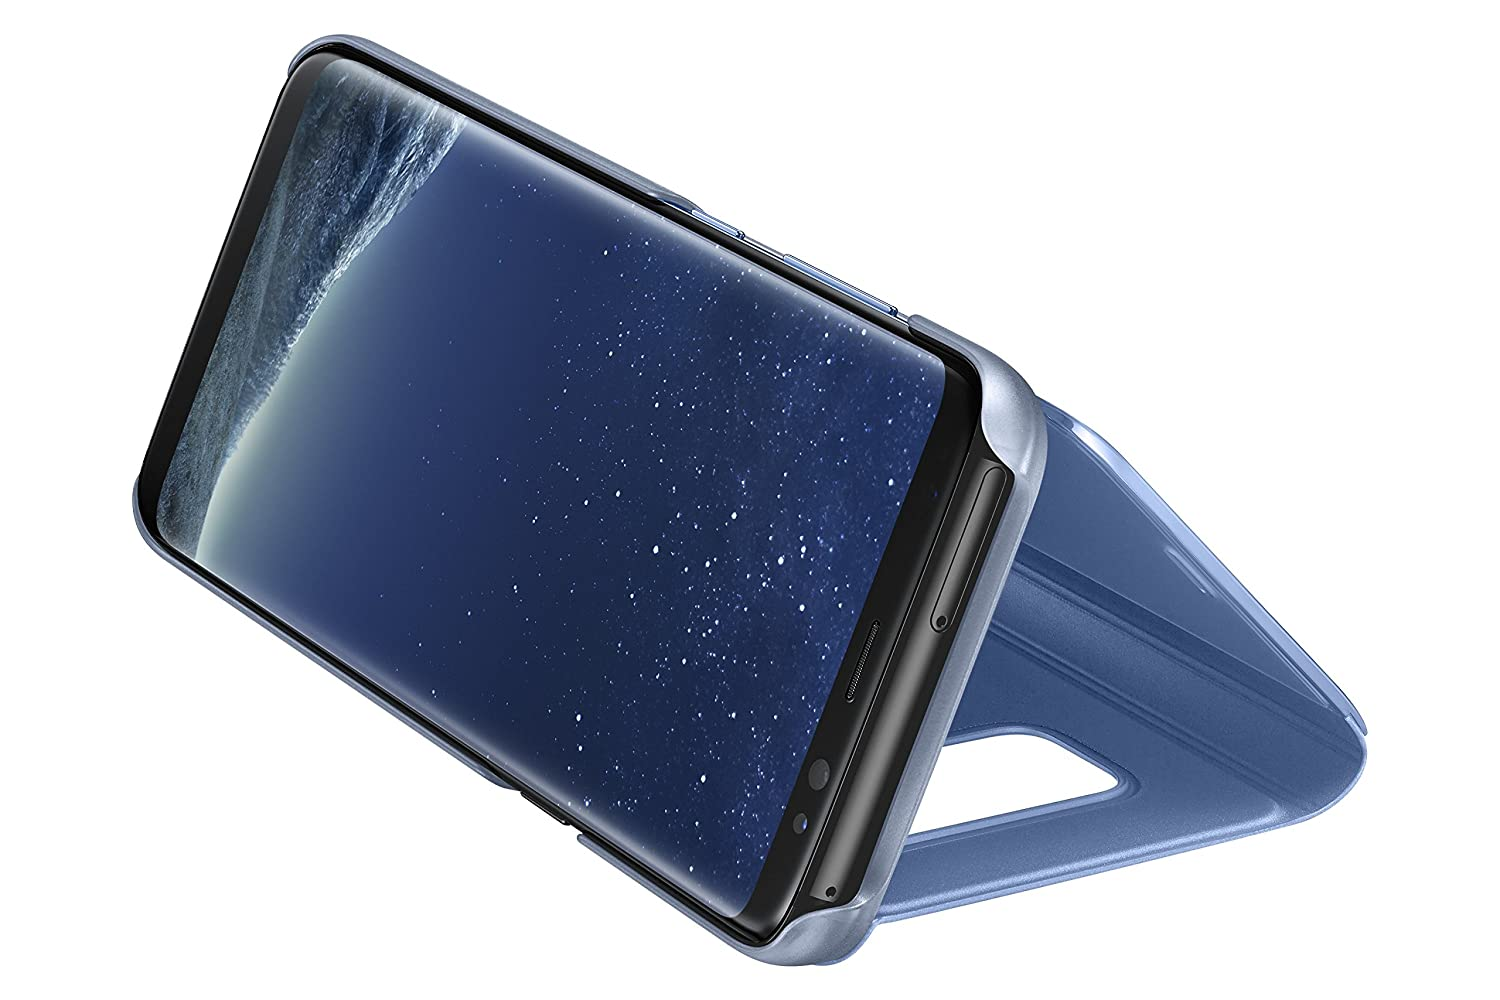 online retailer 0c5a2 d79a1 Samsung Original Clear View Cover Case and Stand for Galaxy S8 - Gloss Blue